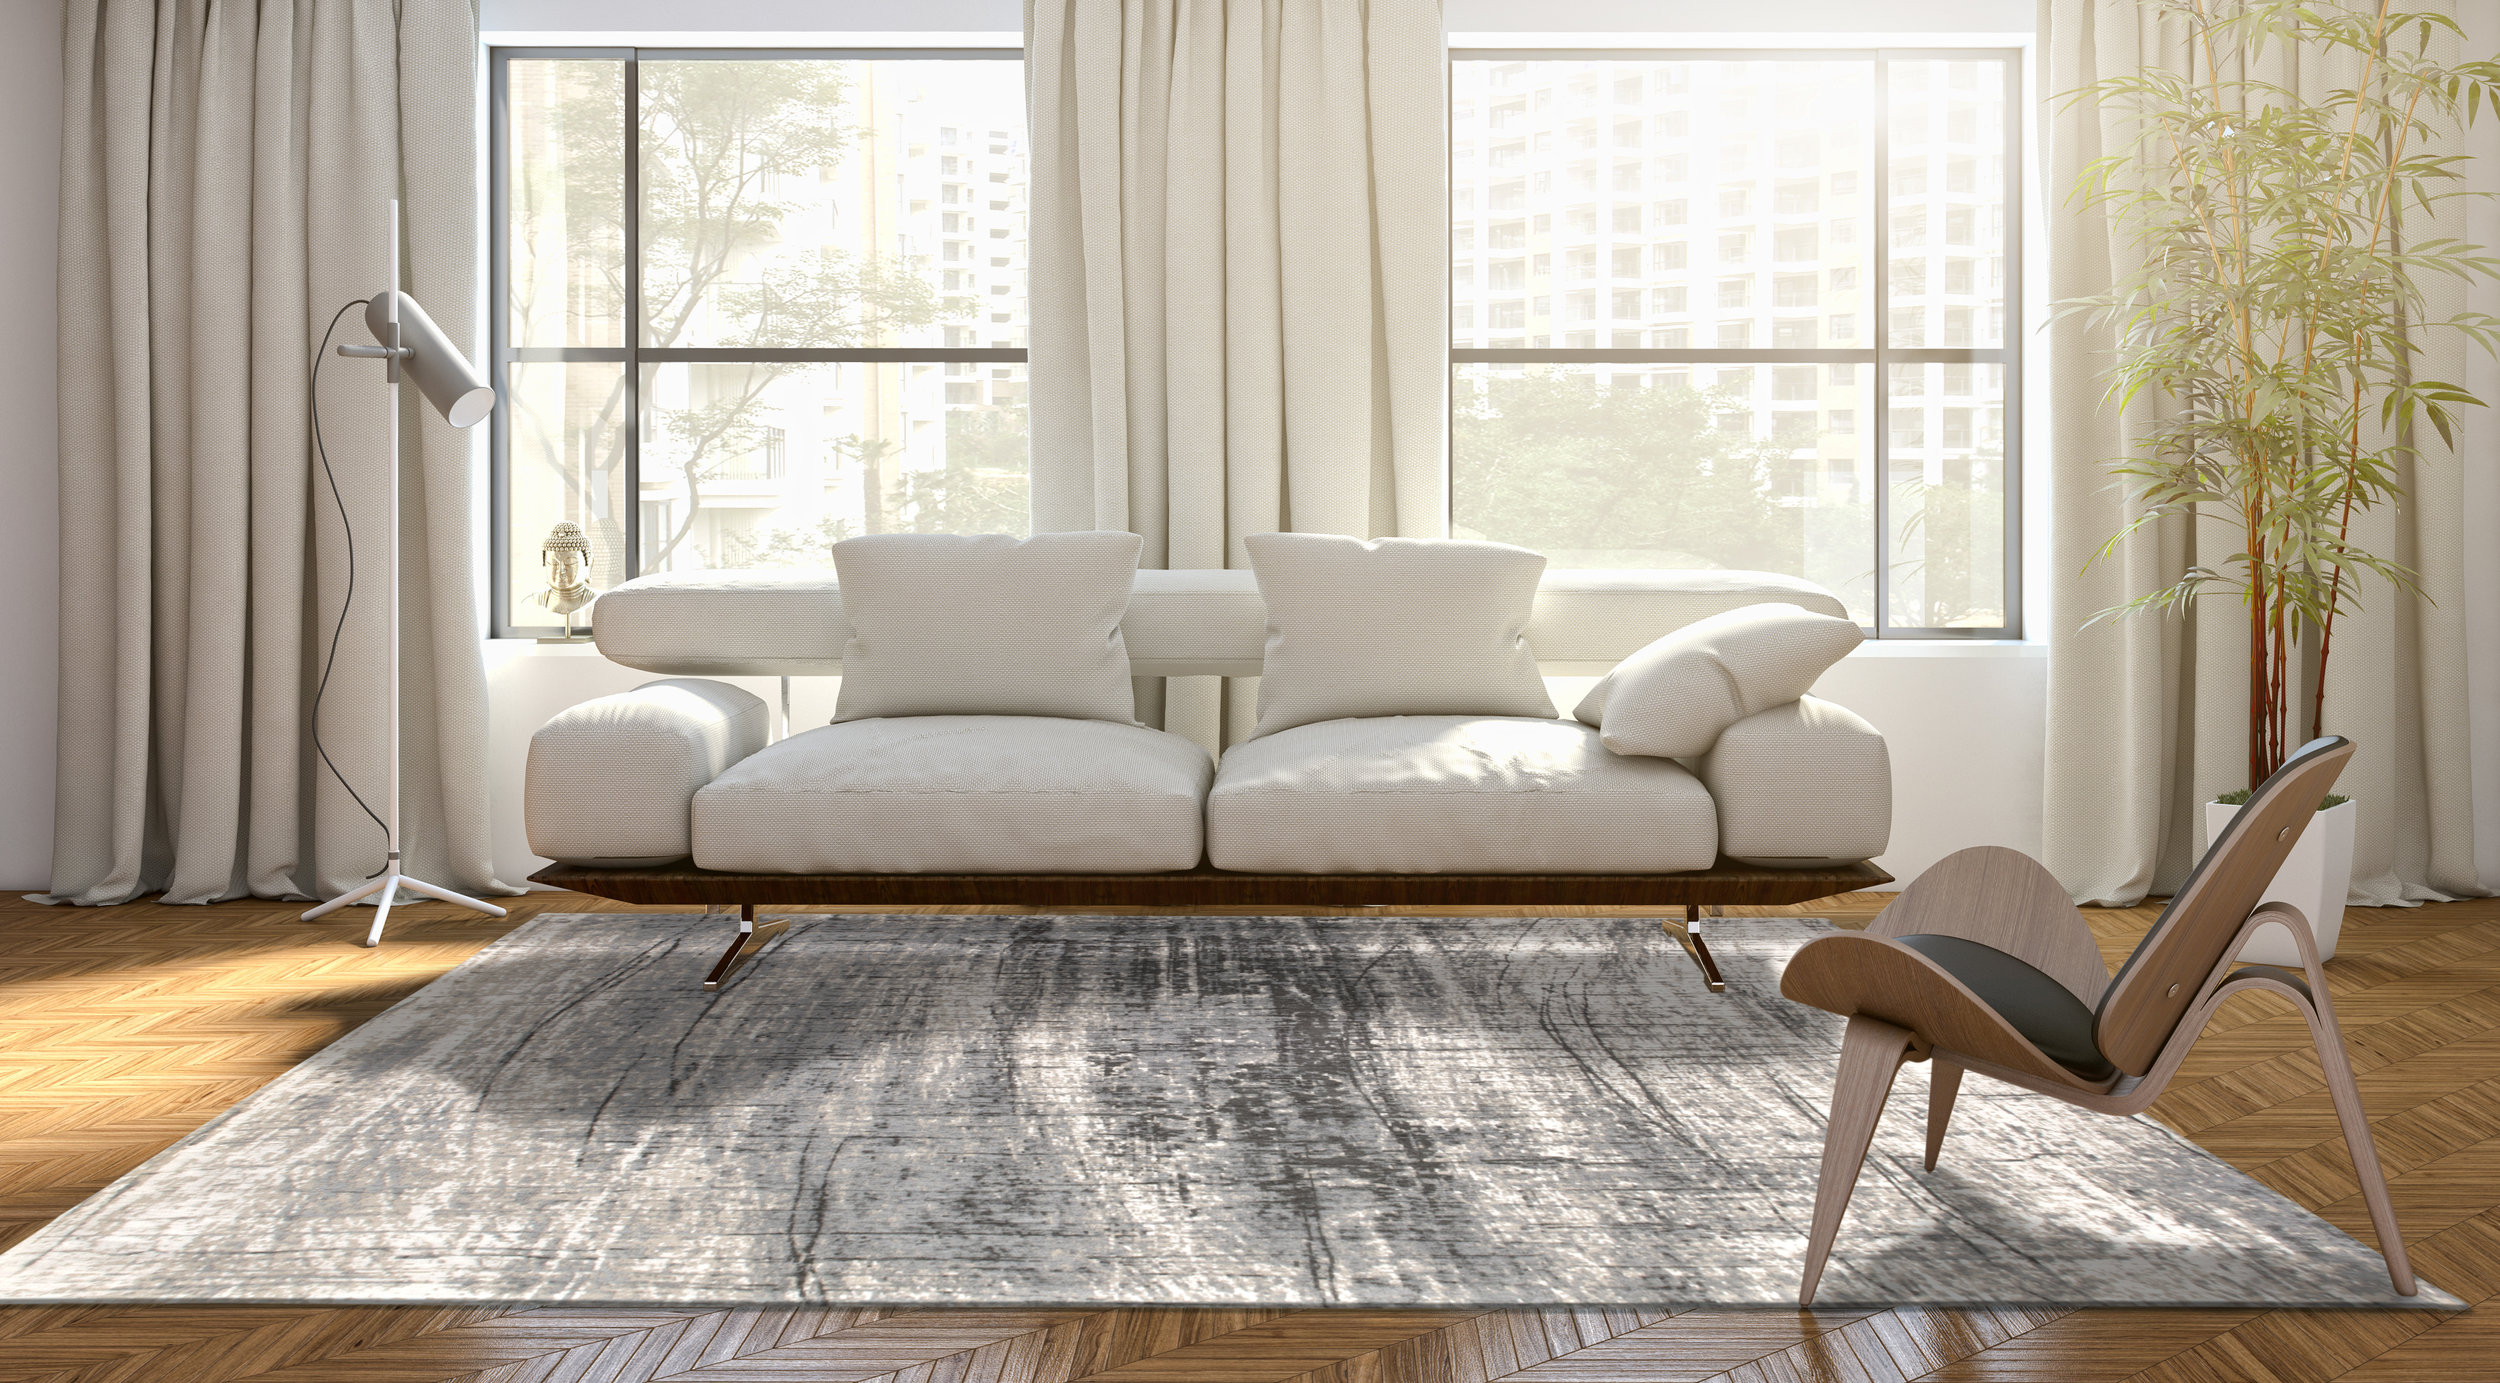 Modern, contemporary home with Louis de Poortere rug entitled Griff in Metro B+W in black, white and gray colors.